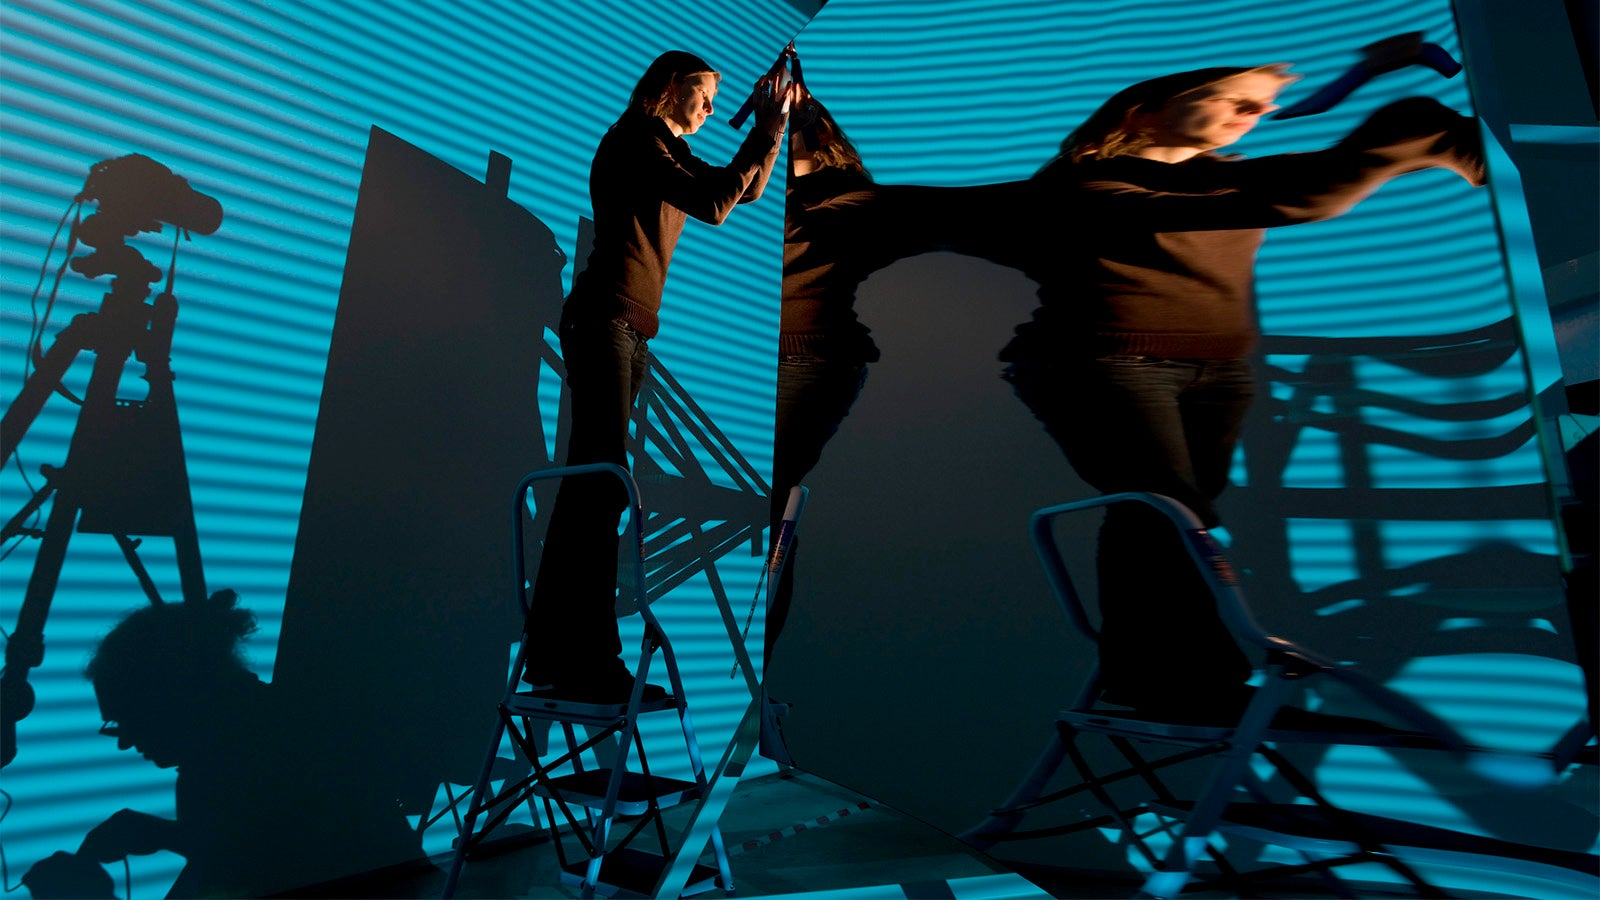 Is This Alice in Mirrorland? Nope, It's How You Test a Solar Mirror